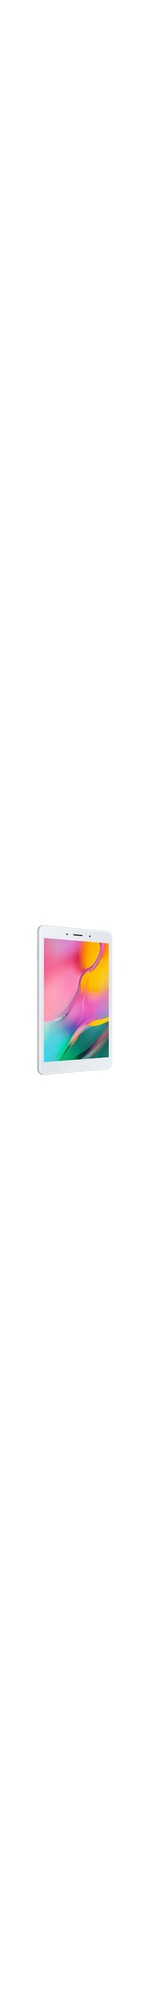 Samsung Galaxy Tab A SM-T295 Tablet - 20.3 cm 8And#34; - 2 GB RAM - 32 GB Storage - Android 9.0 Pie - 4G - Quad-core 4 Core 2 GHz - microSD Supported - 2 Megapixel Fro